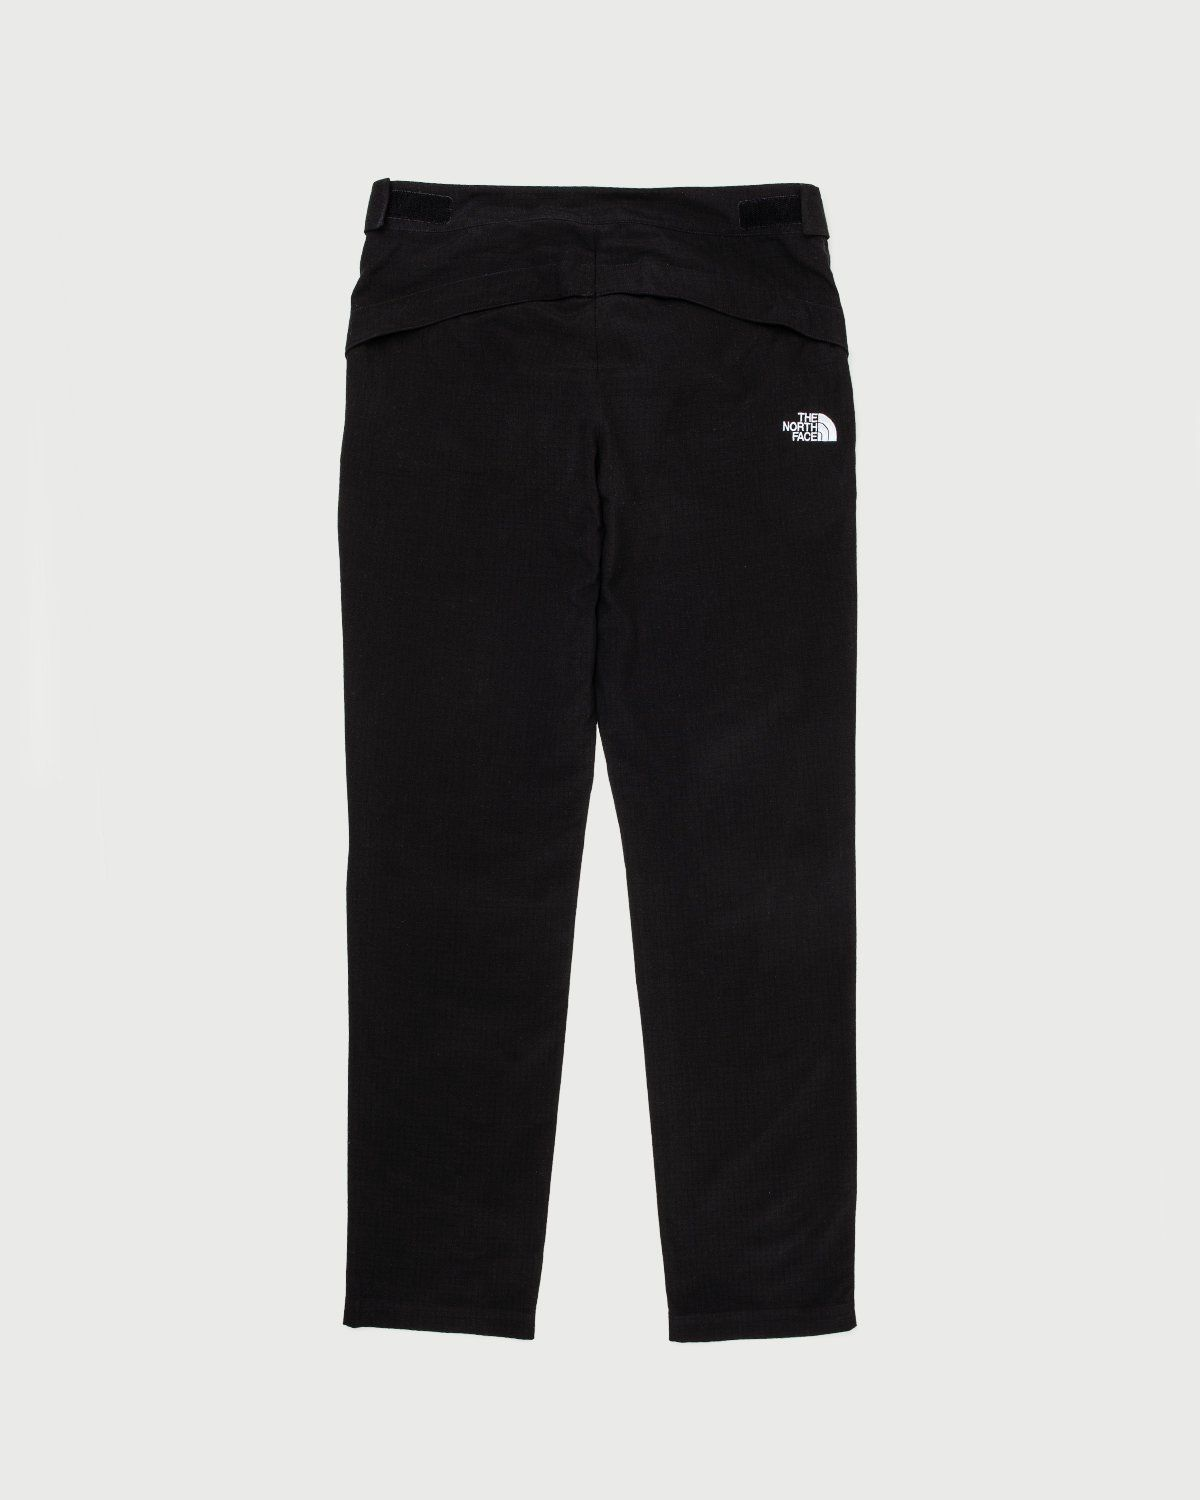 The North Face Black Series — Ripstop Trousers Black - Image 5